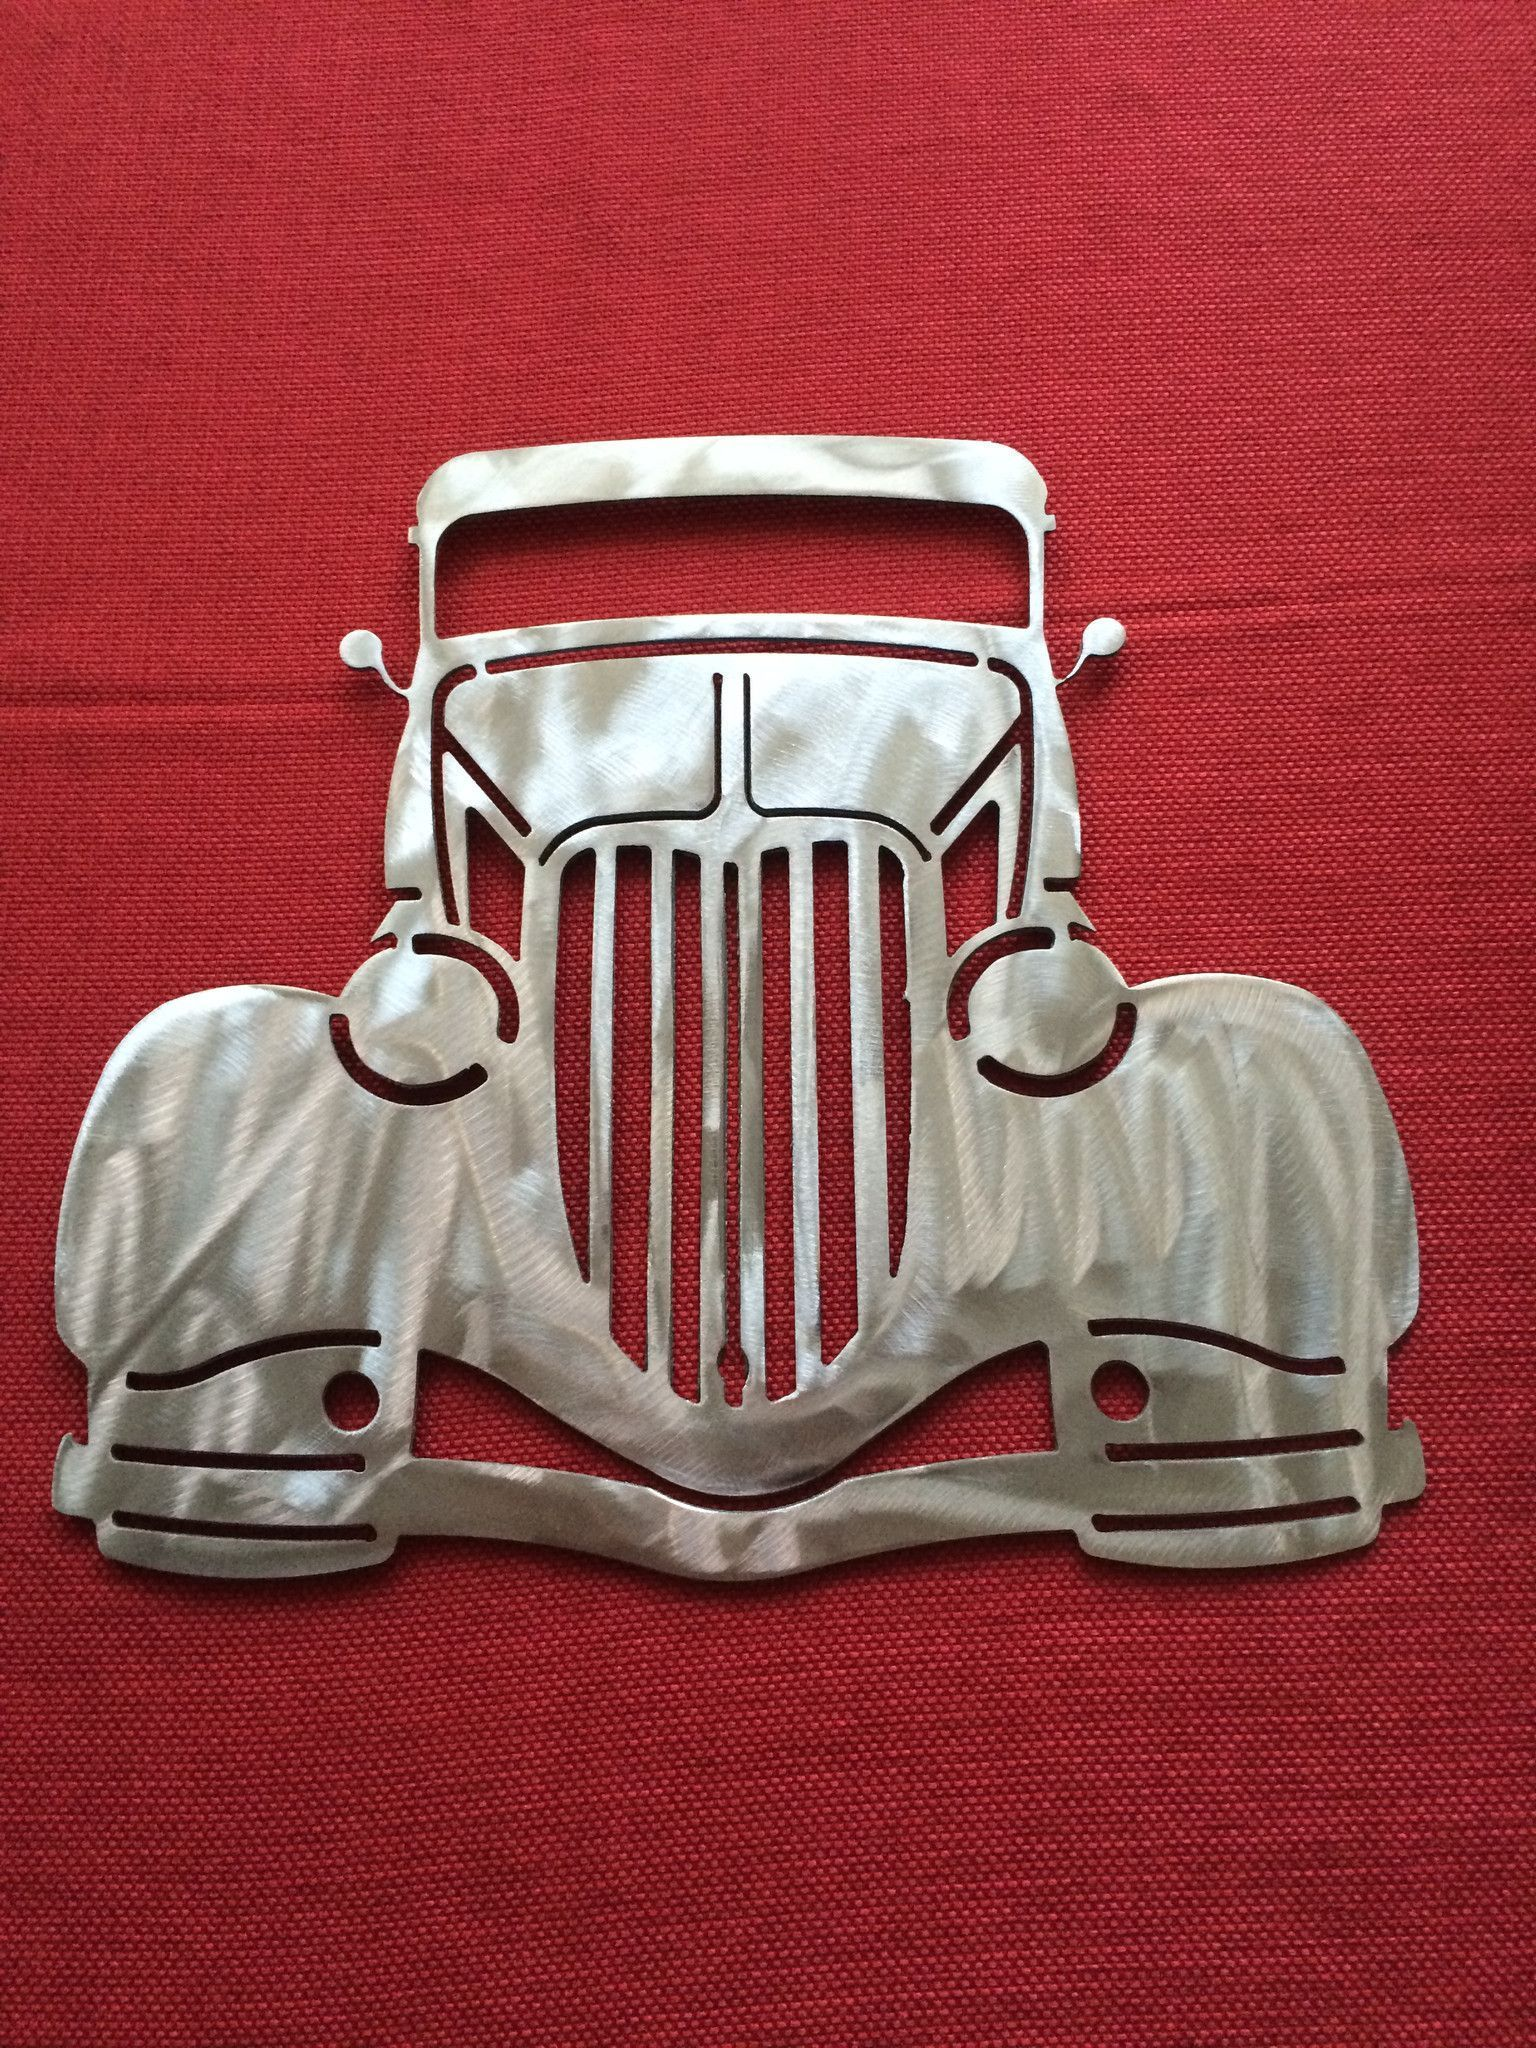 Dodge Chevy Ford Metal Wall : 36 Chevy Coupe Front End Metal Art